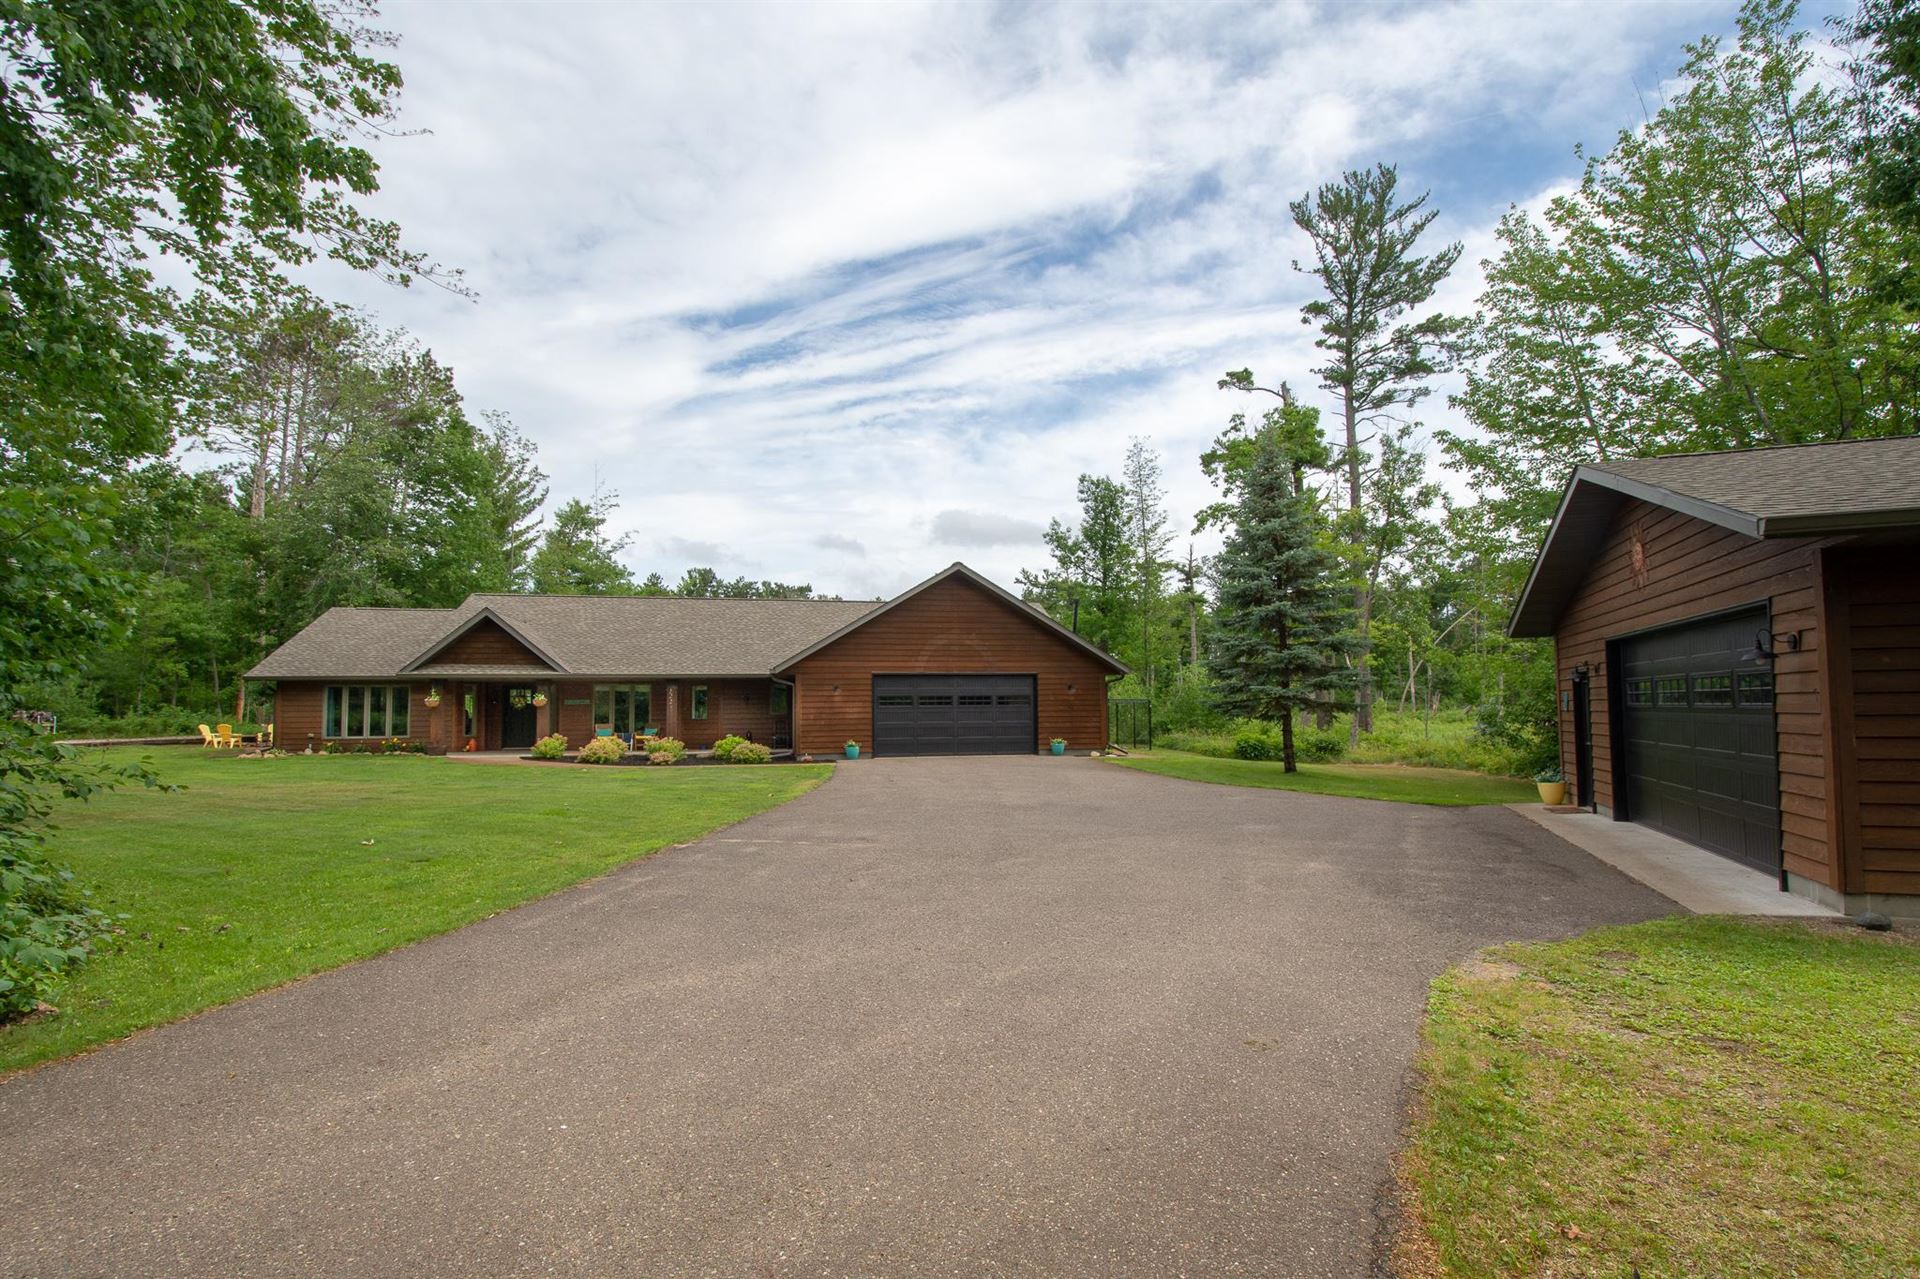 Photo for 5728 Nashway Road, Nisswa, MN 56468 (MLS # 5616235)